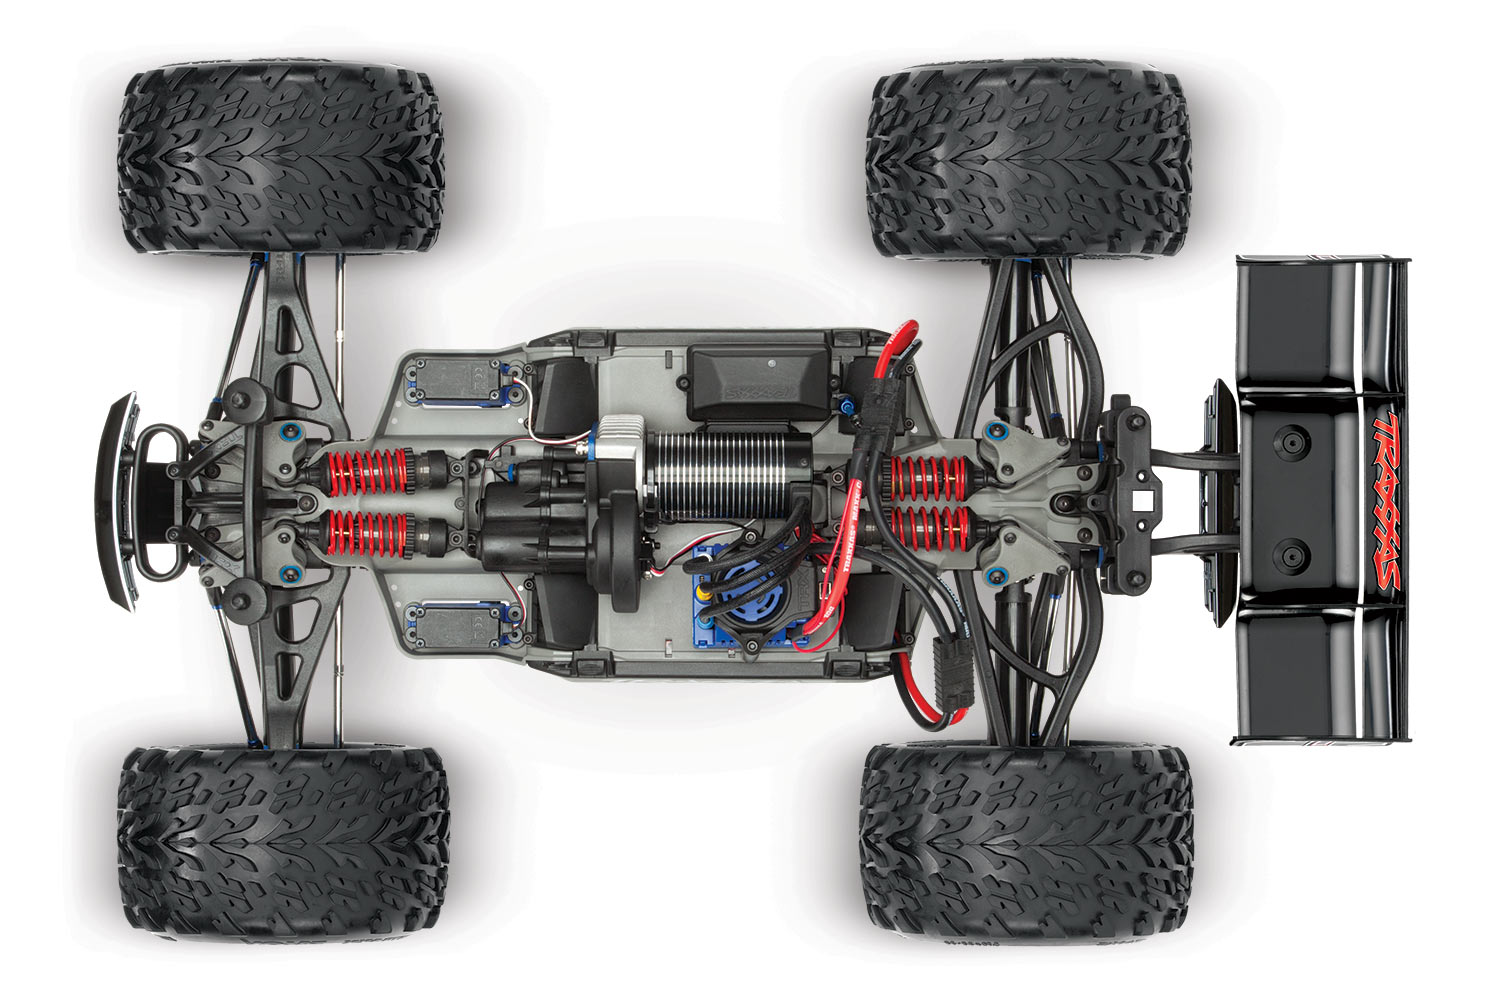 56085-top-chassis-jpg.88800